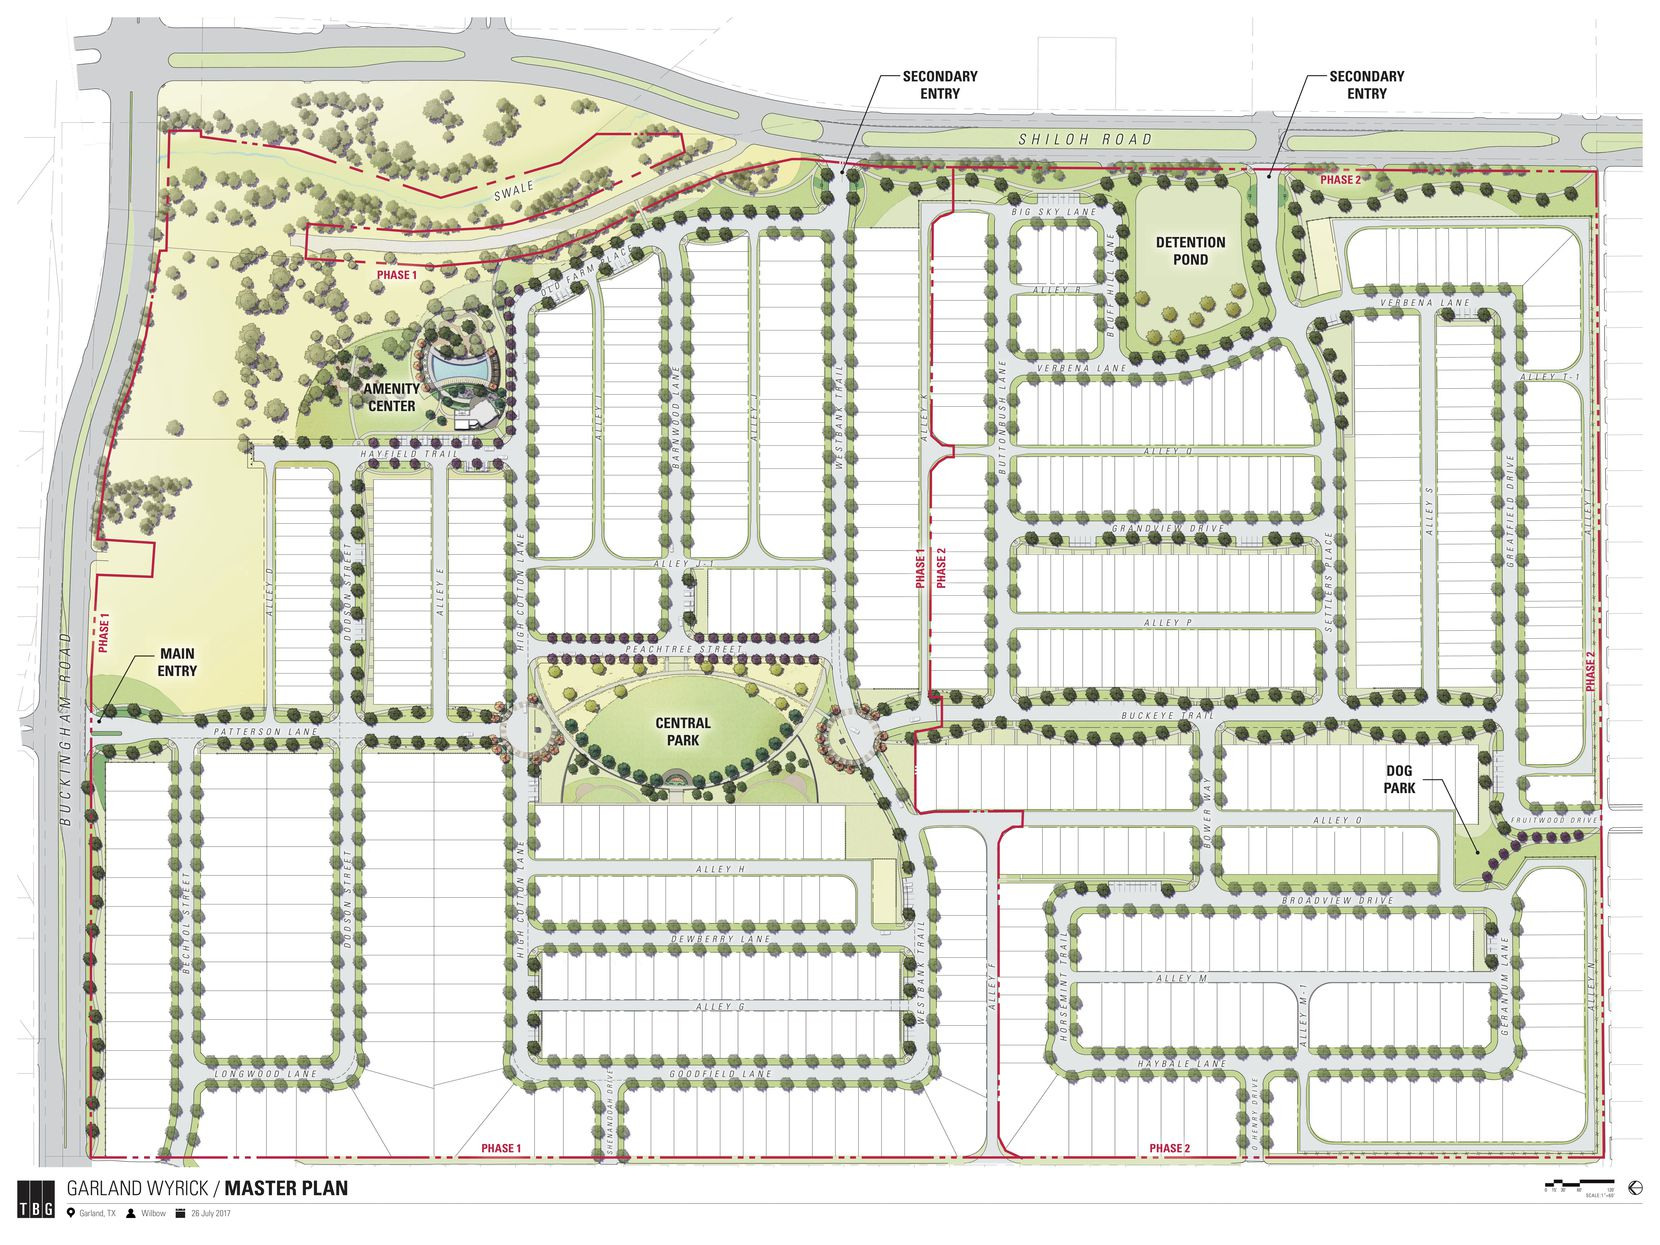 The first phase of the development will be over 300 homes.